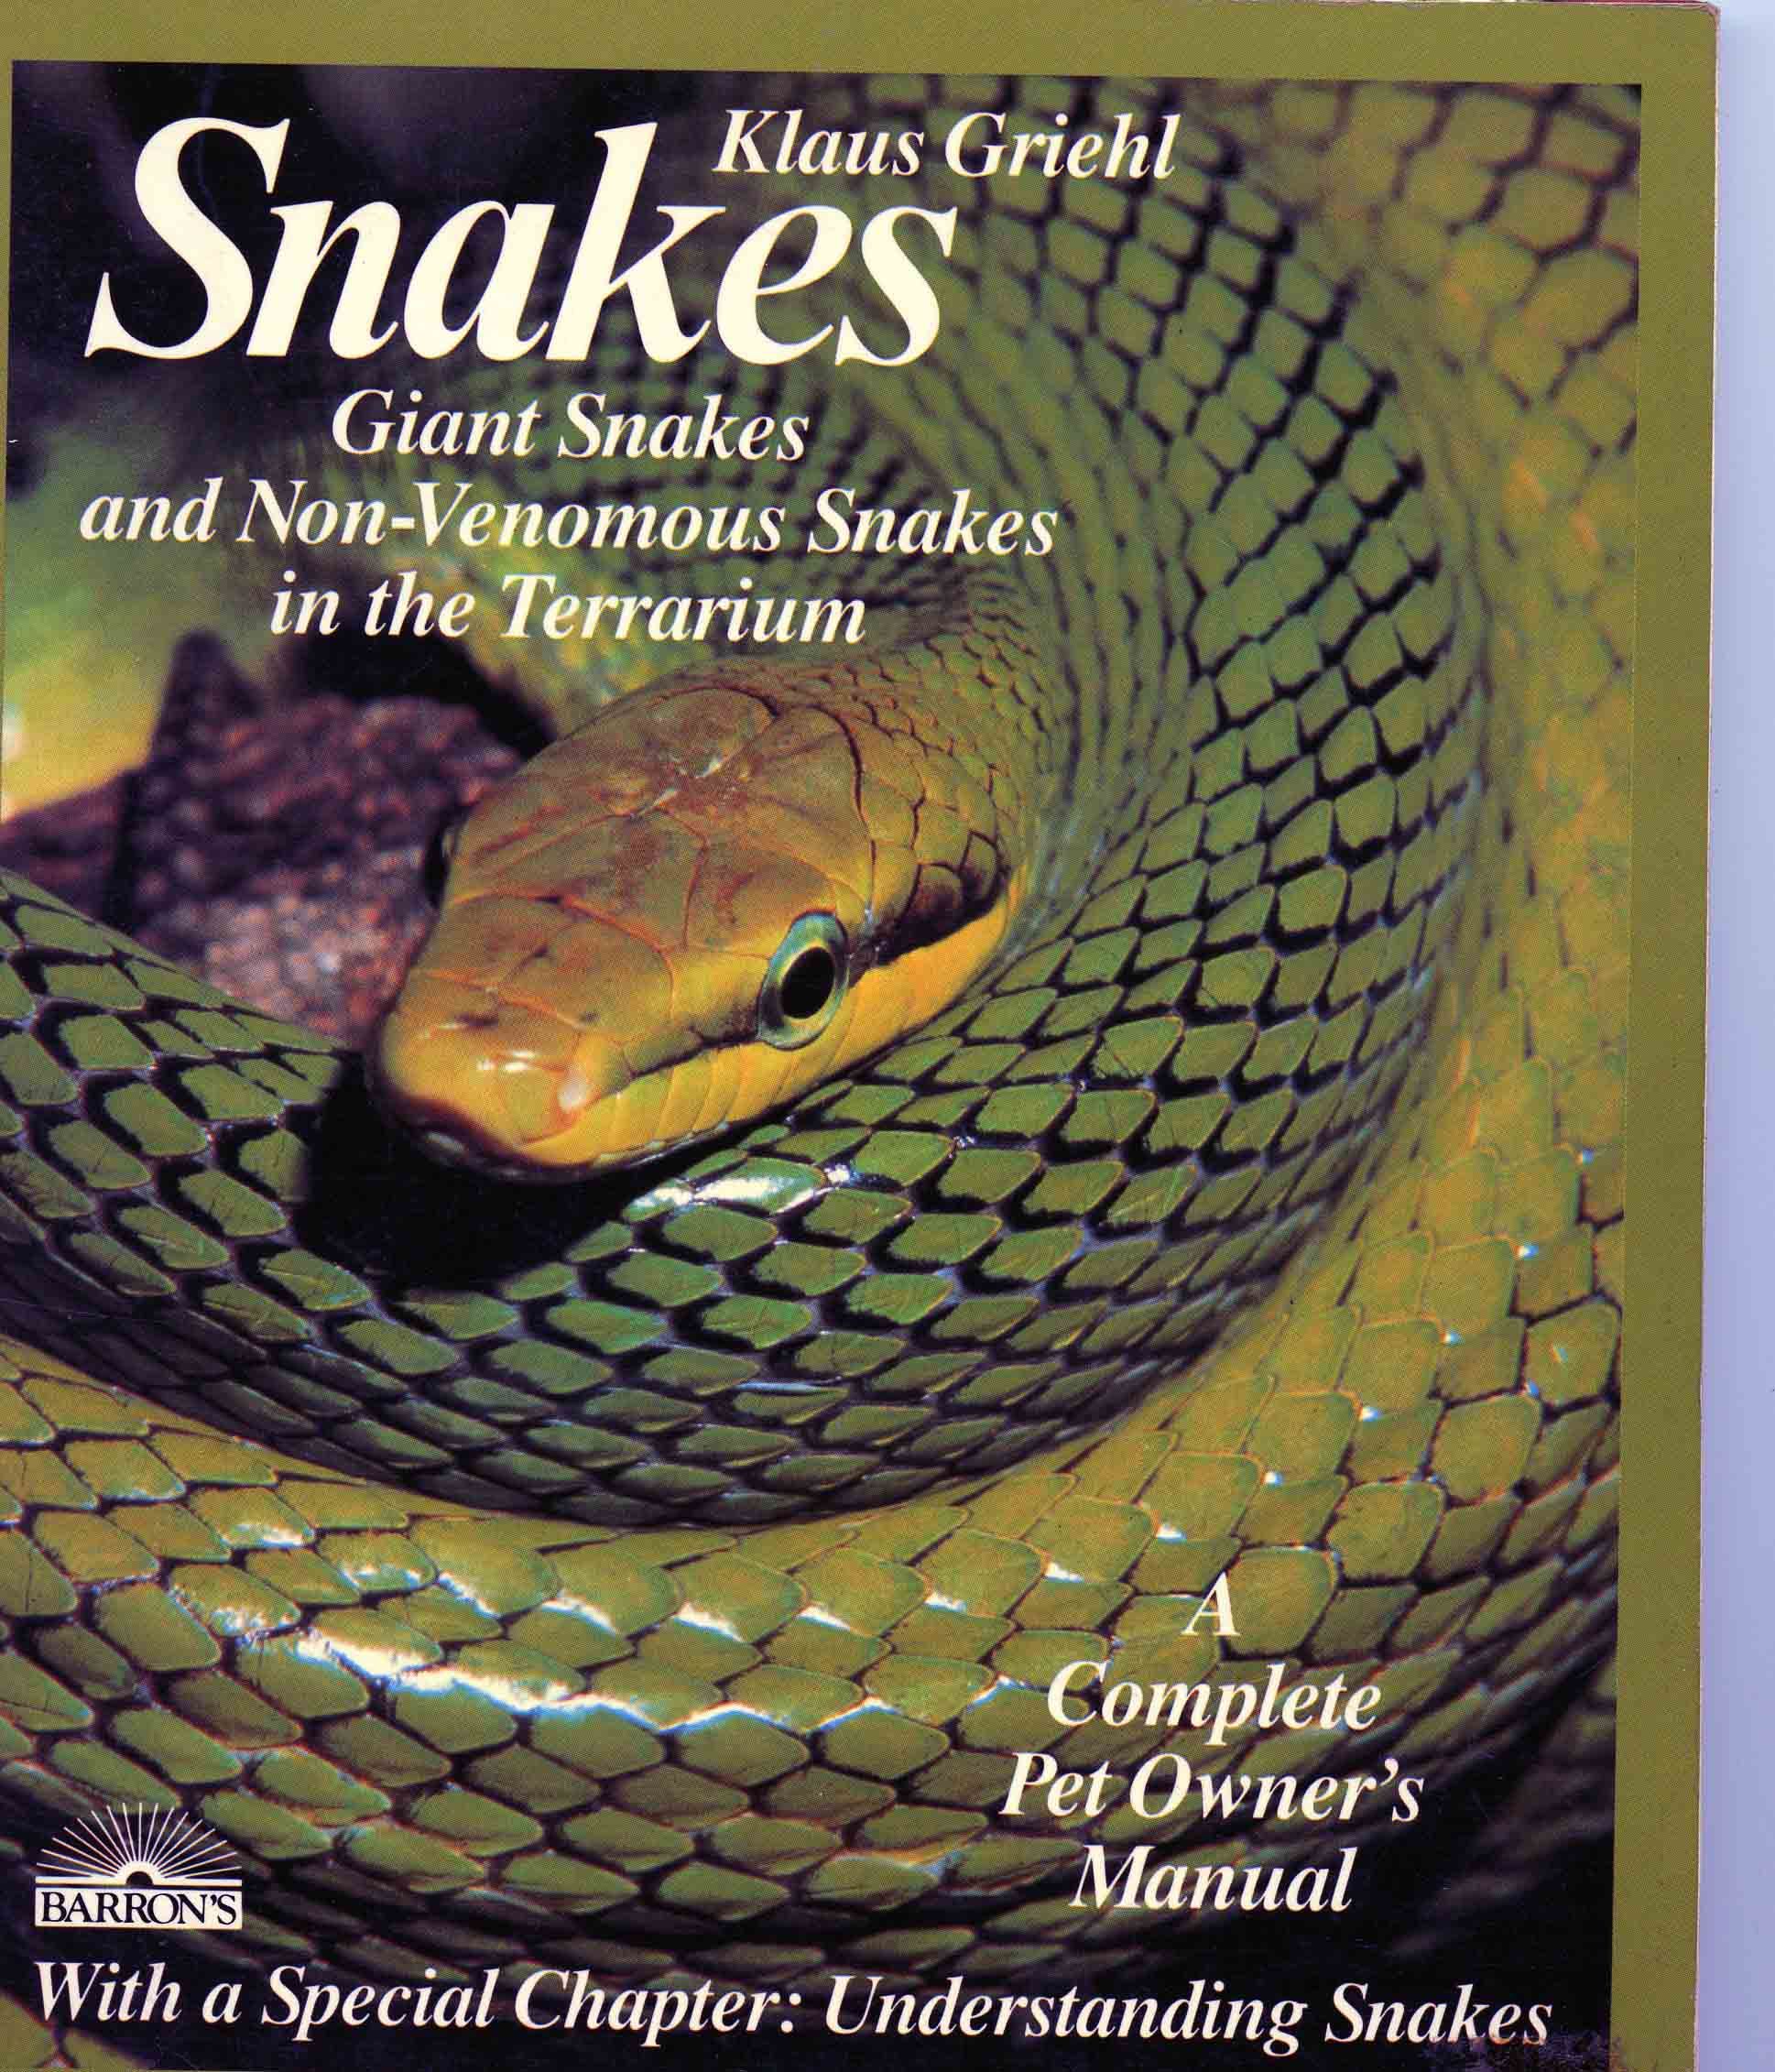 Image for Snakes: Giant Snakes and Non-Venomous Snakes in the Terrarium,